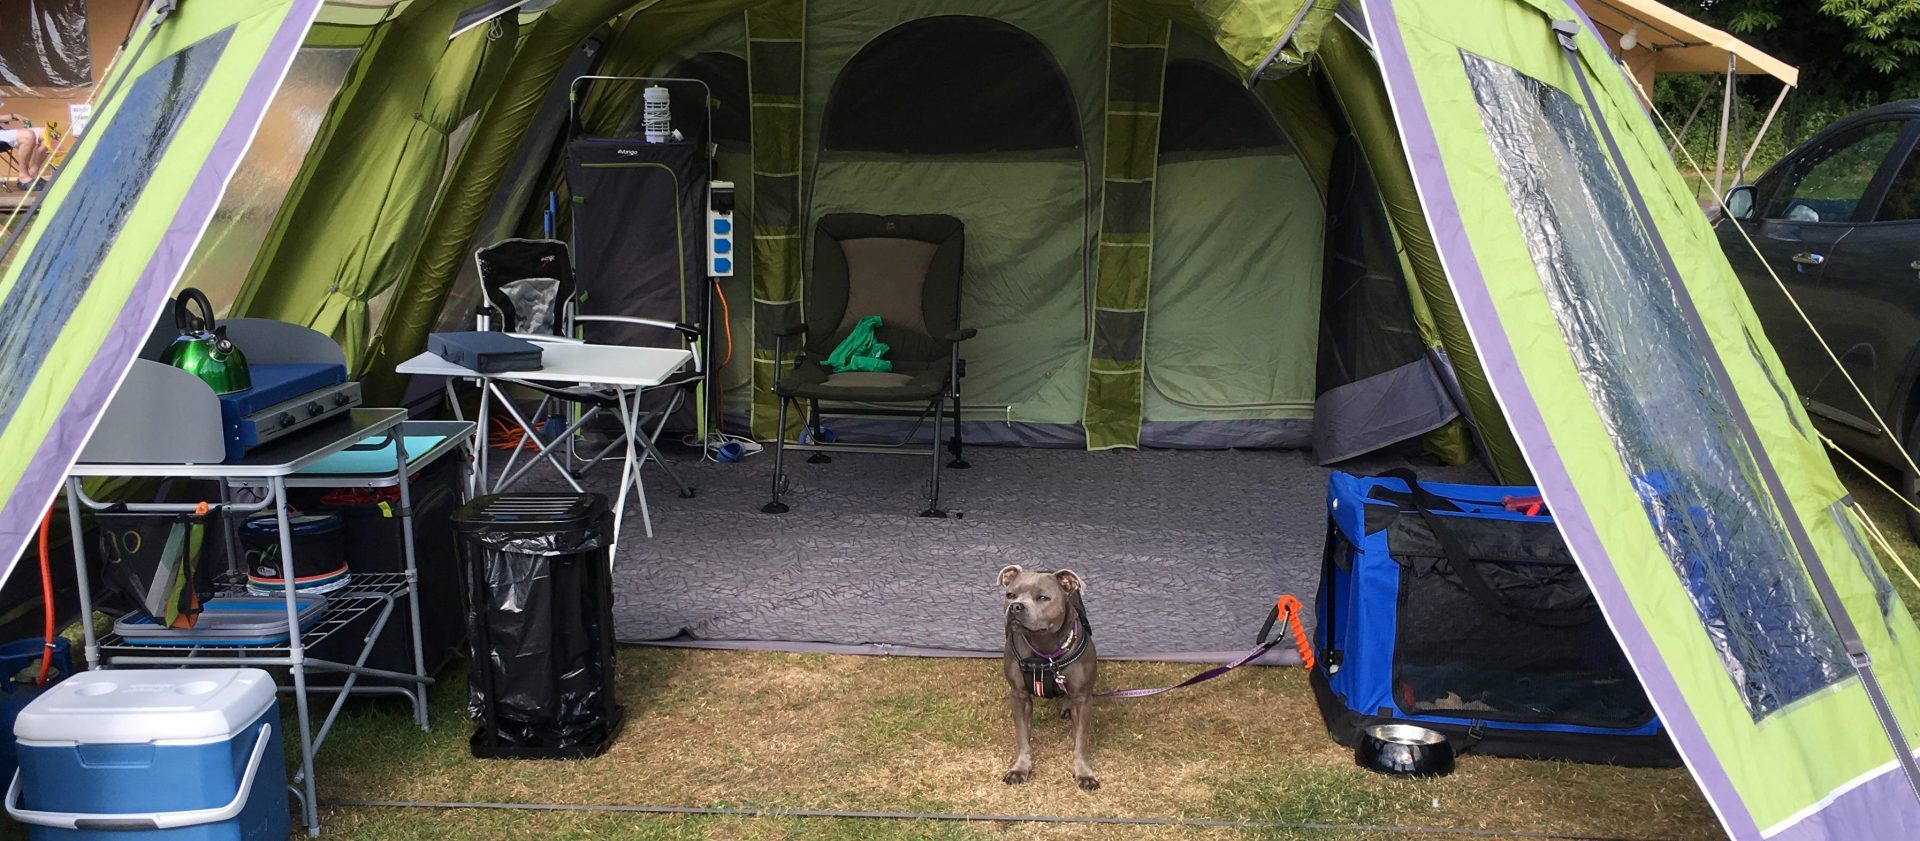 Travelling with our dog, Pepper, in Europe